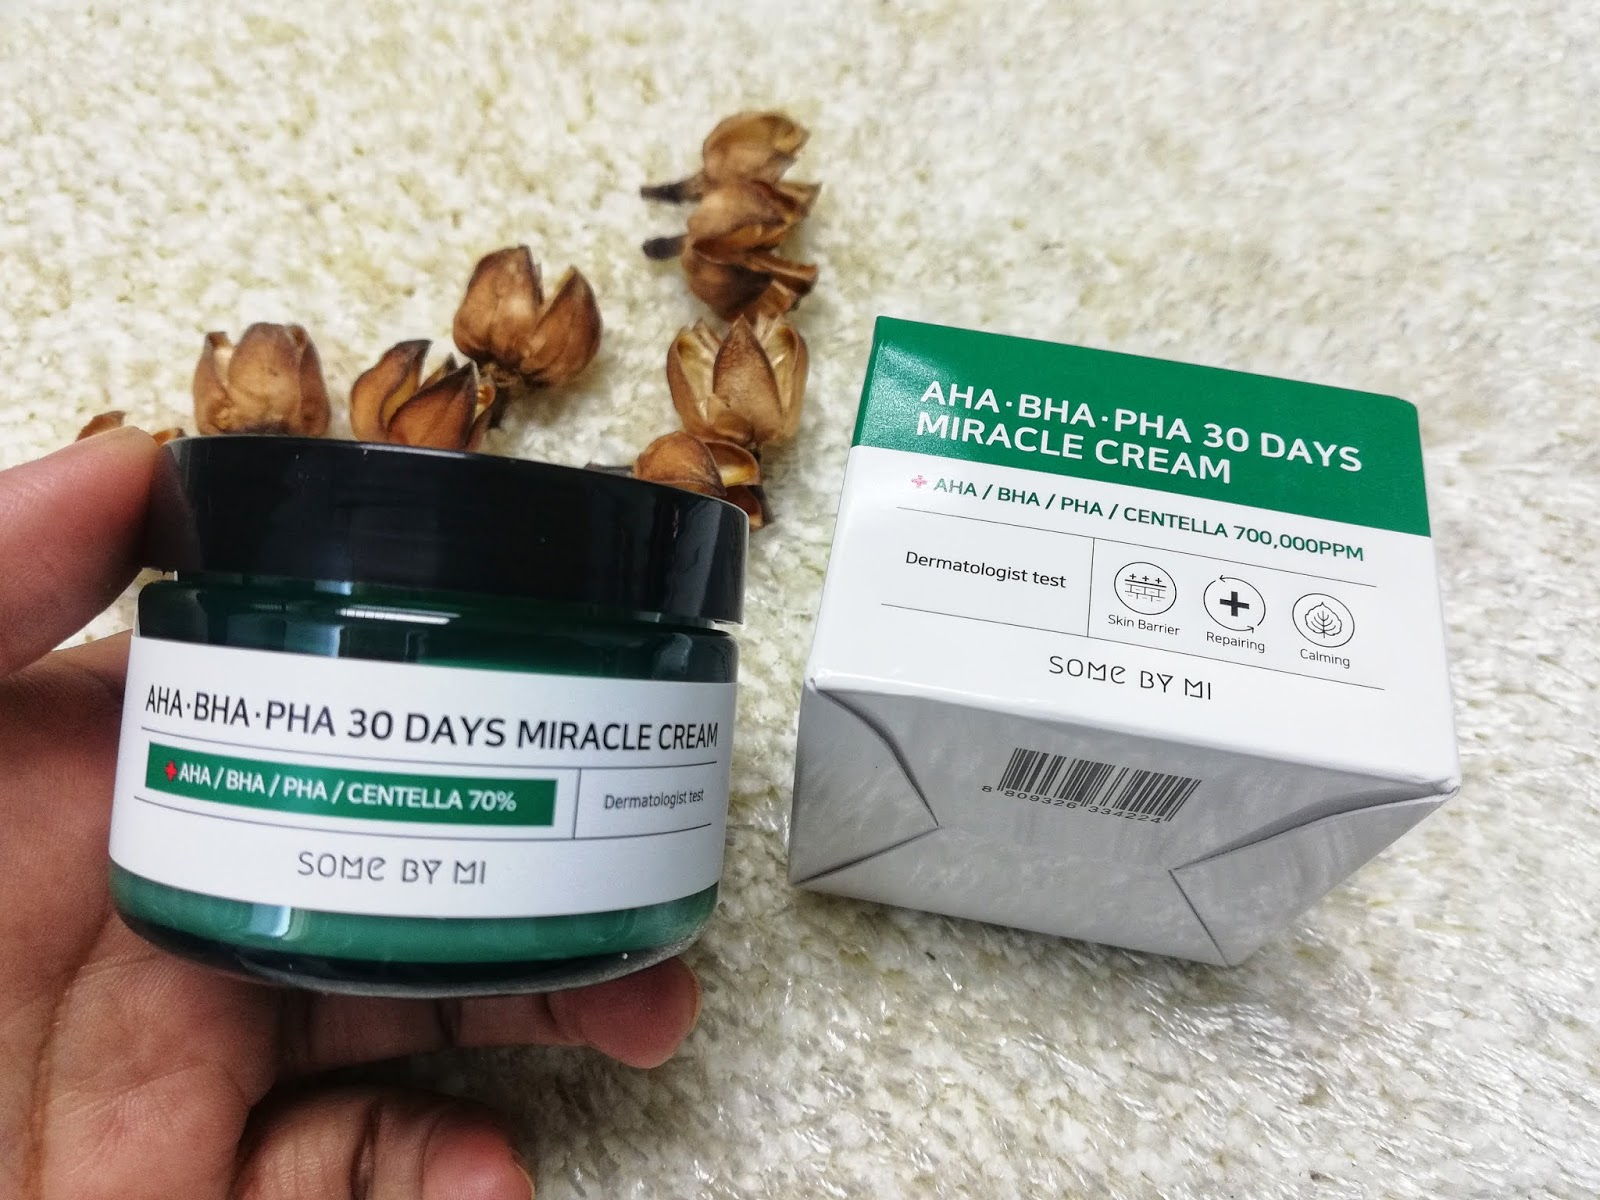 30 days miracle cream for acne